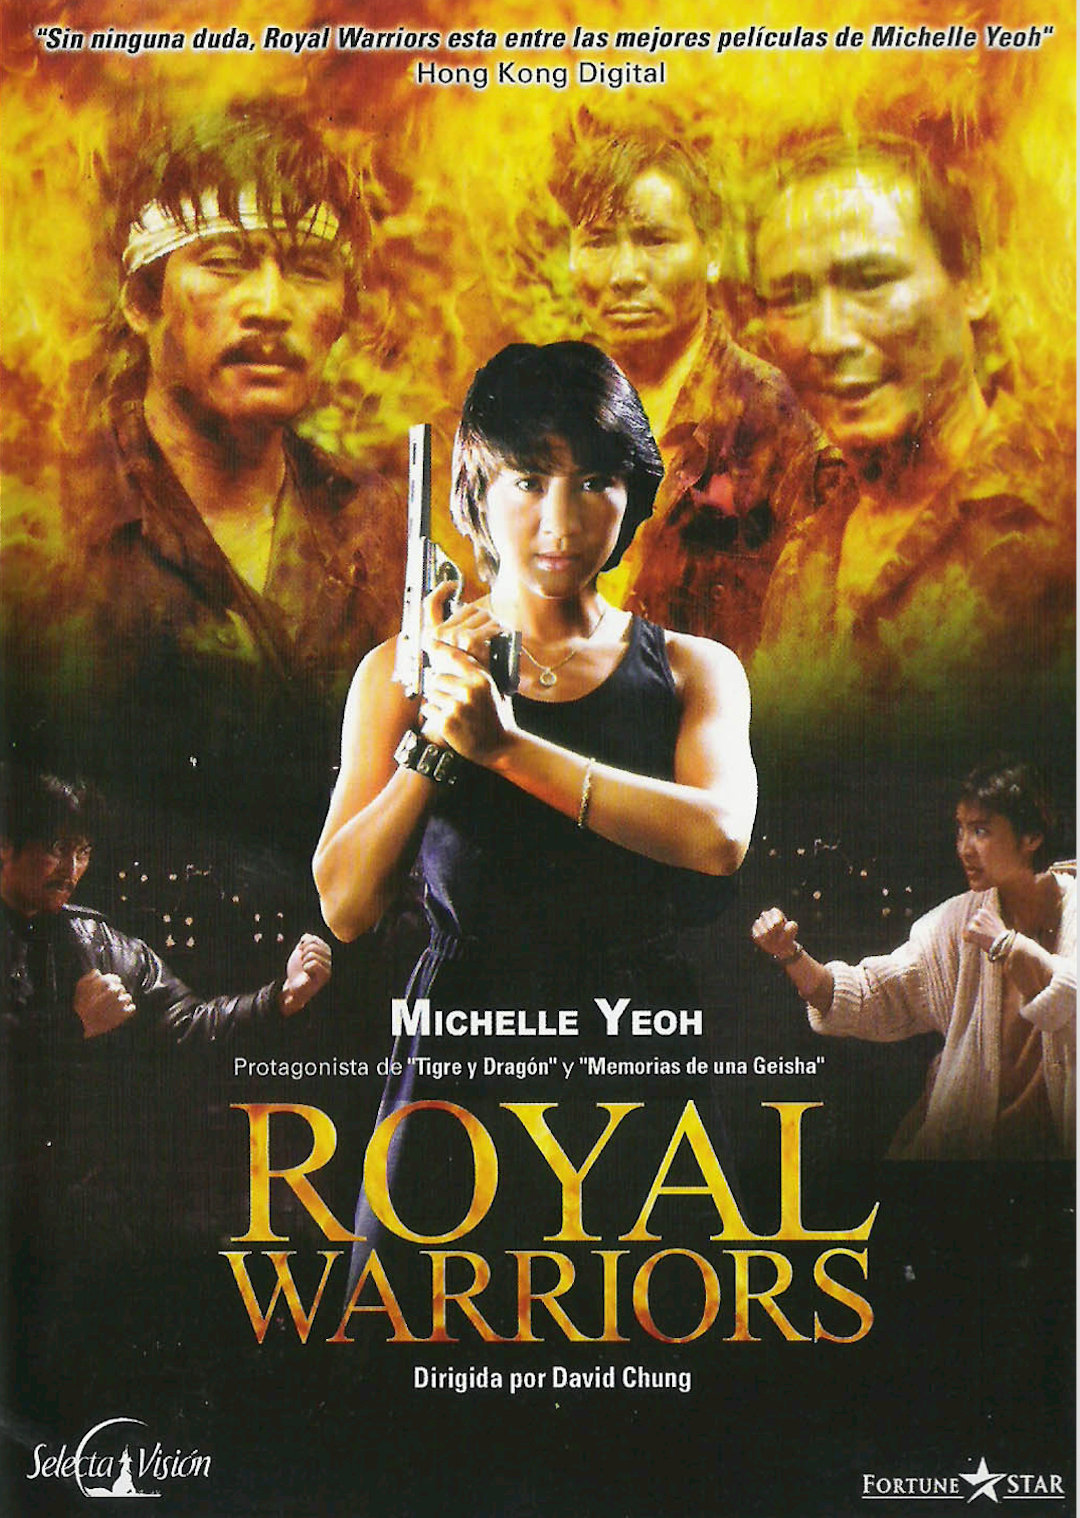 Royal Warriors Poster1